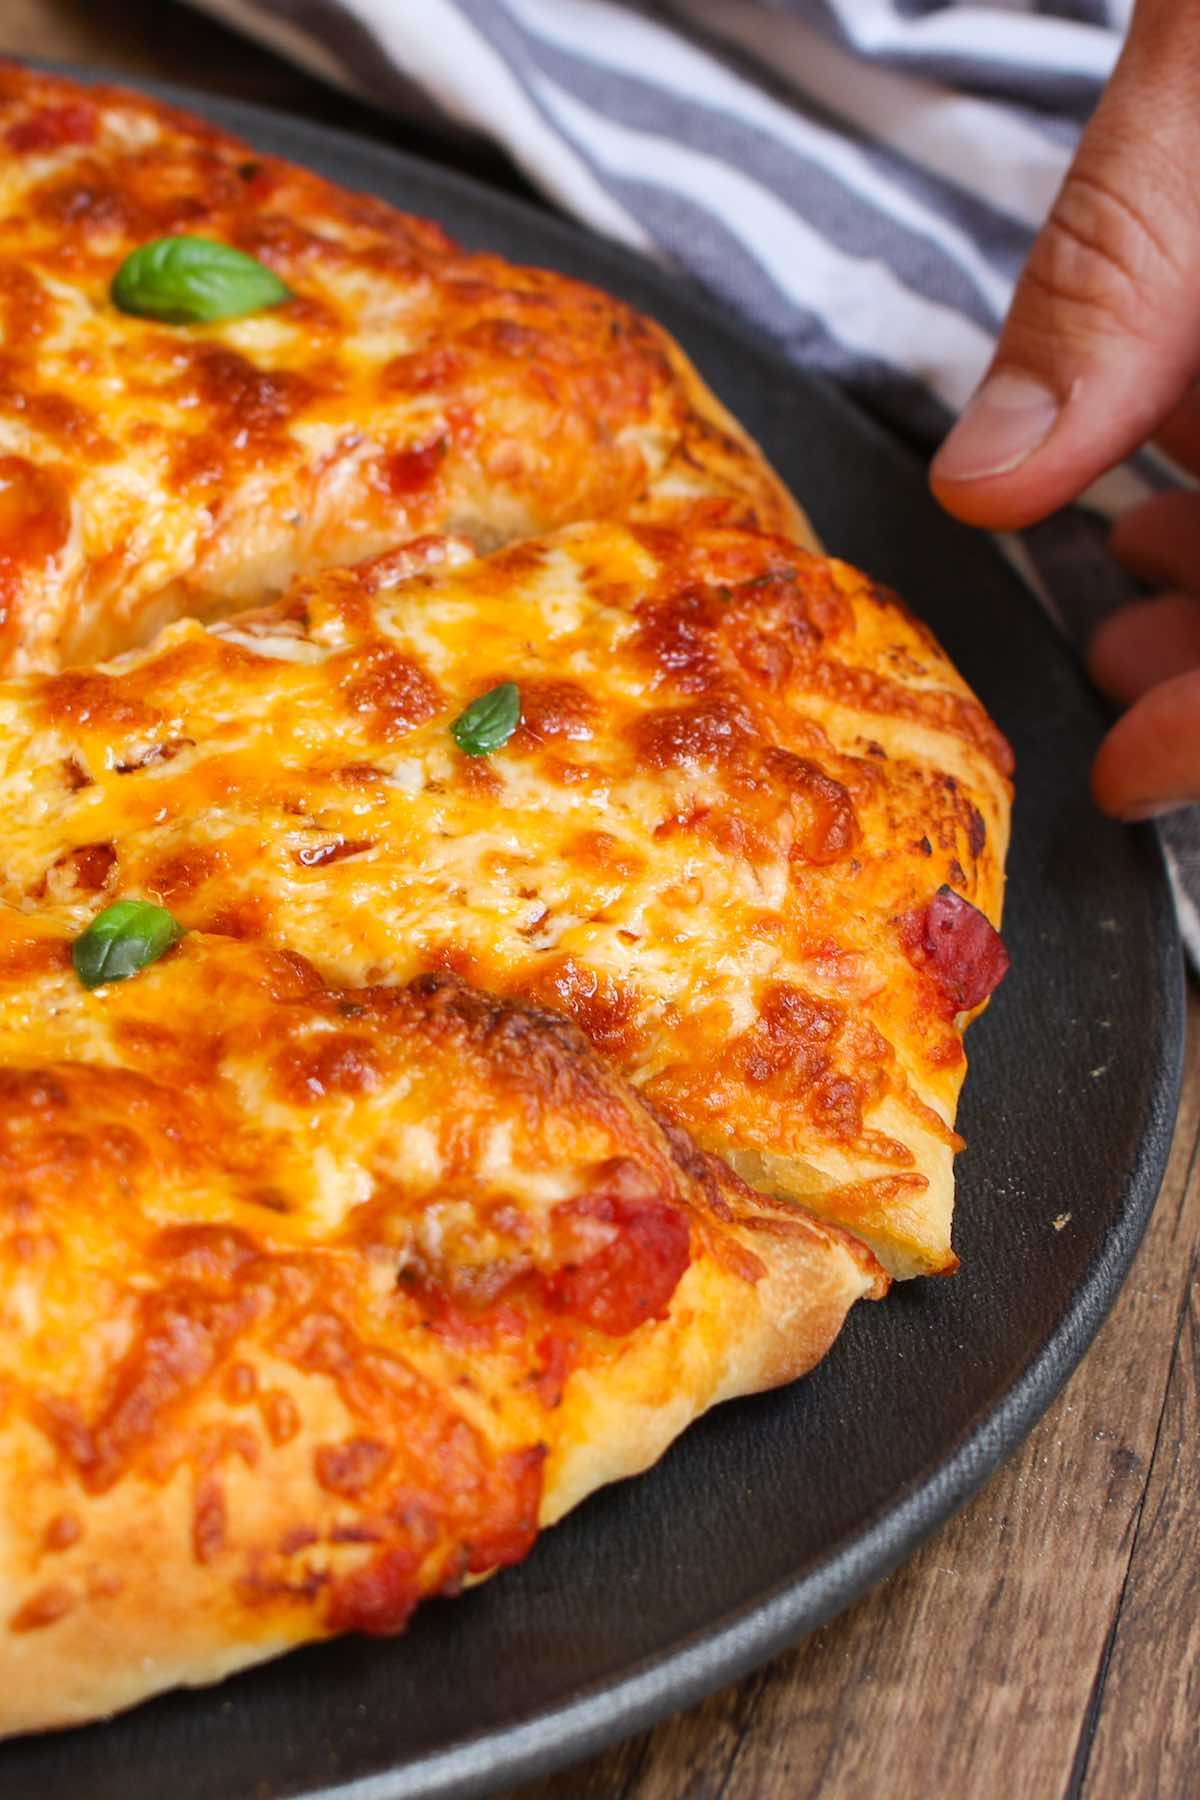 This Easy Pizza Dough Recipe makes soft and fluffy pizza crust that's beyond addictive! It's the best homemade pizza dough that has been passed down through generations. It takes 10 minutes to prepare and made by hand with 6 simple ingredients!